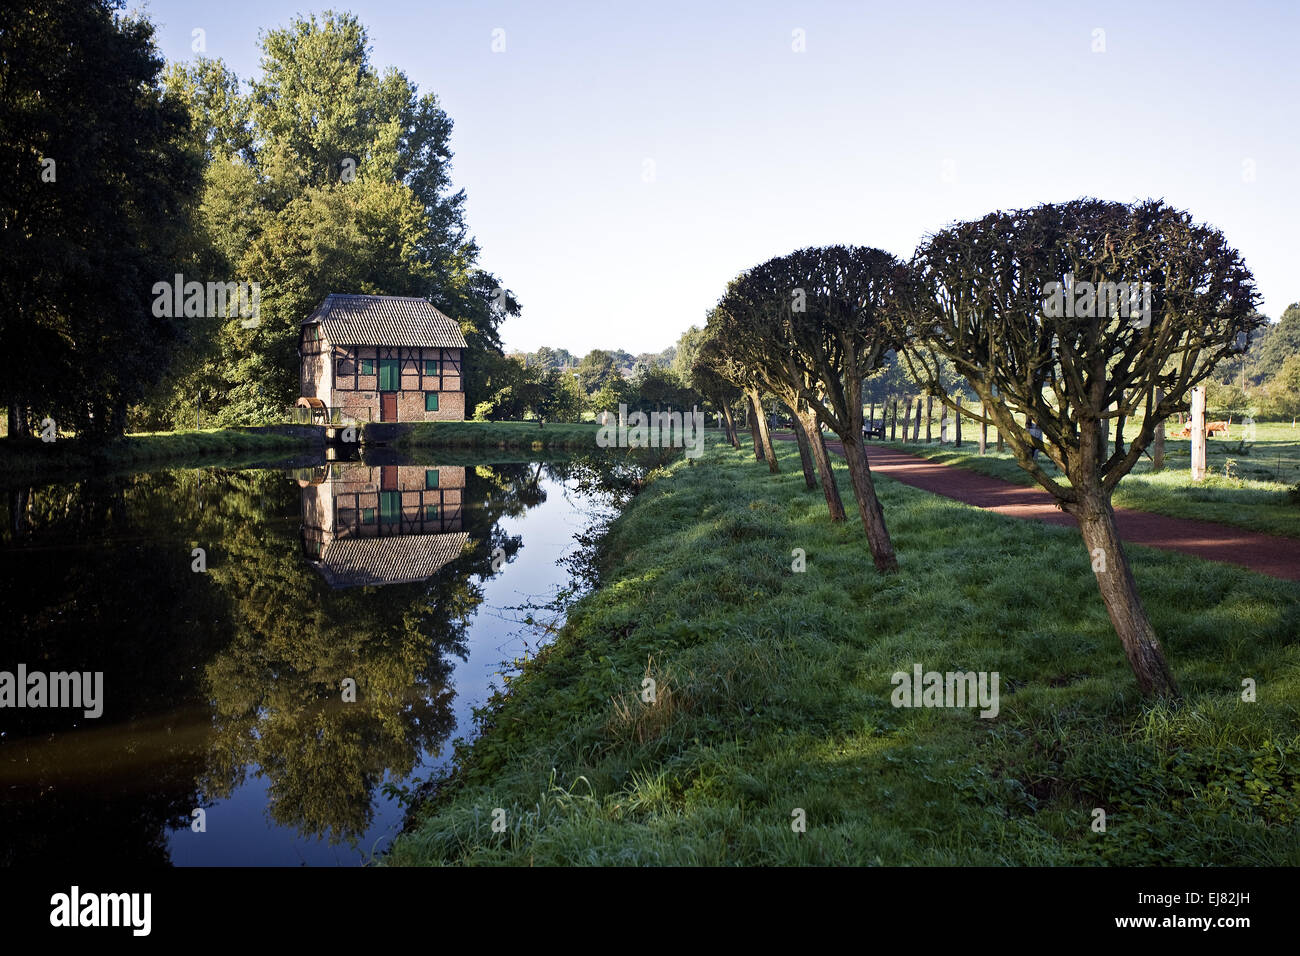 Watermill, Schermbeck, Germany - Stock Image